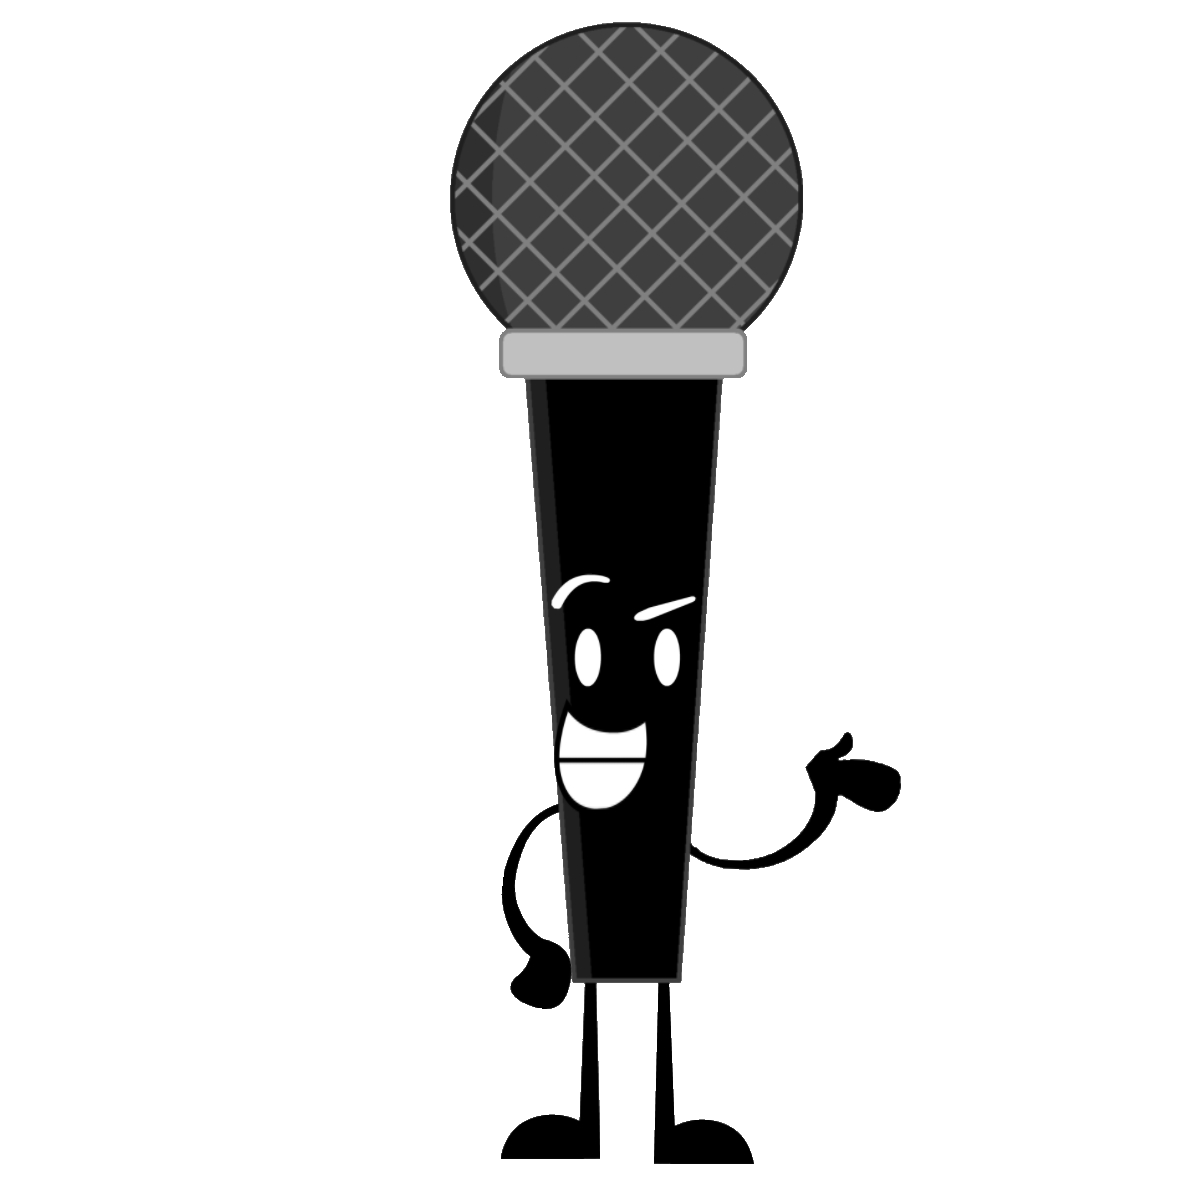 Cartoon microphone png. Image object oppose wikia